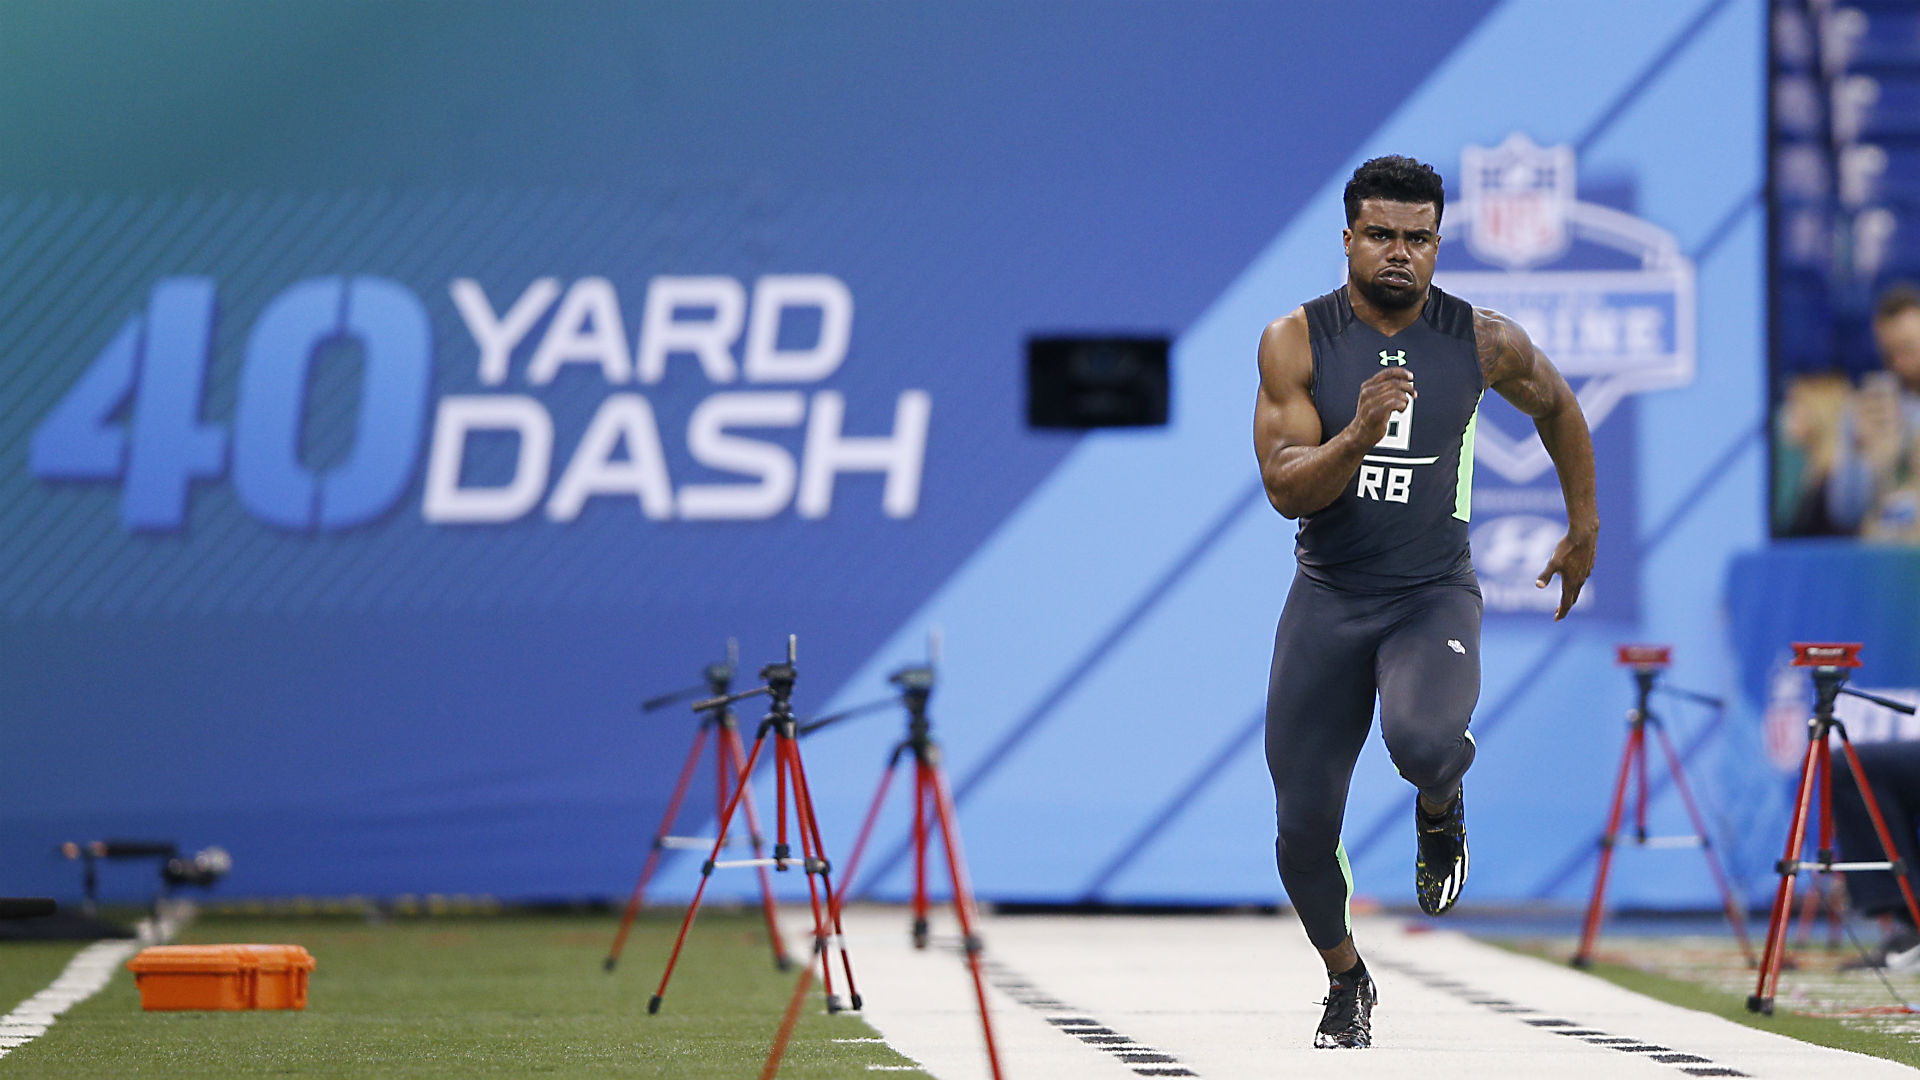 The nfl combine america s most watched cattle call nfl sporting